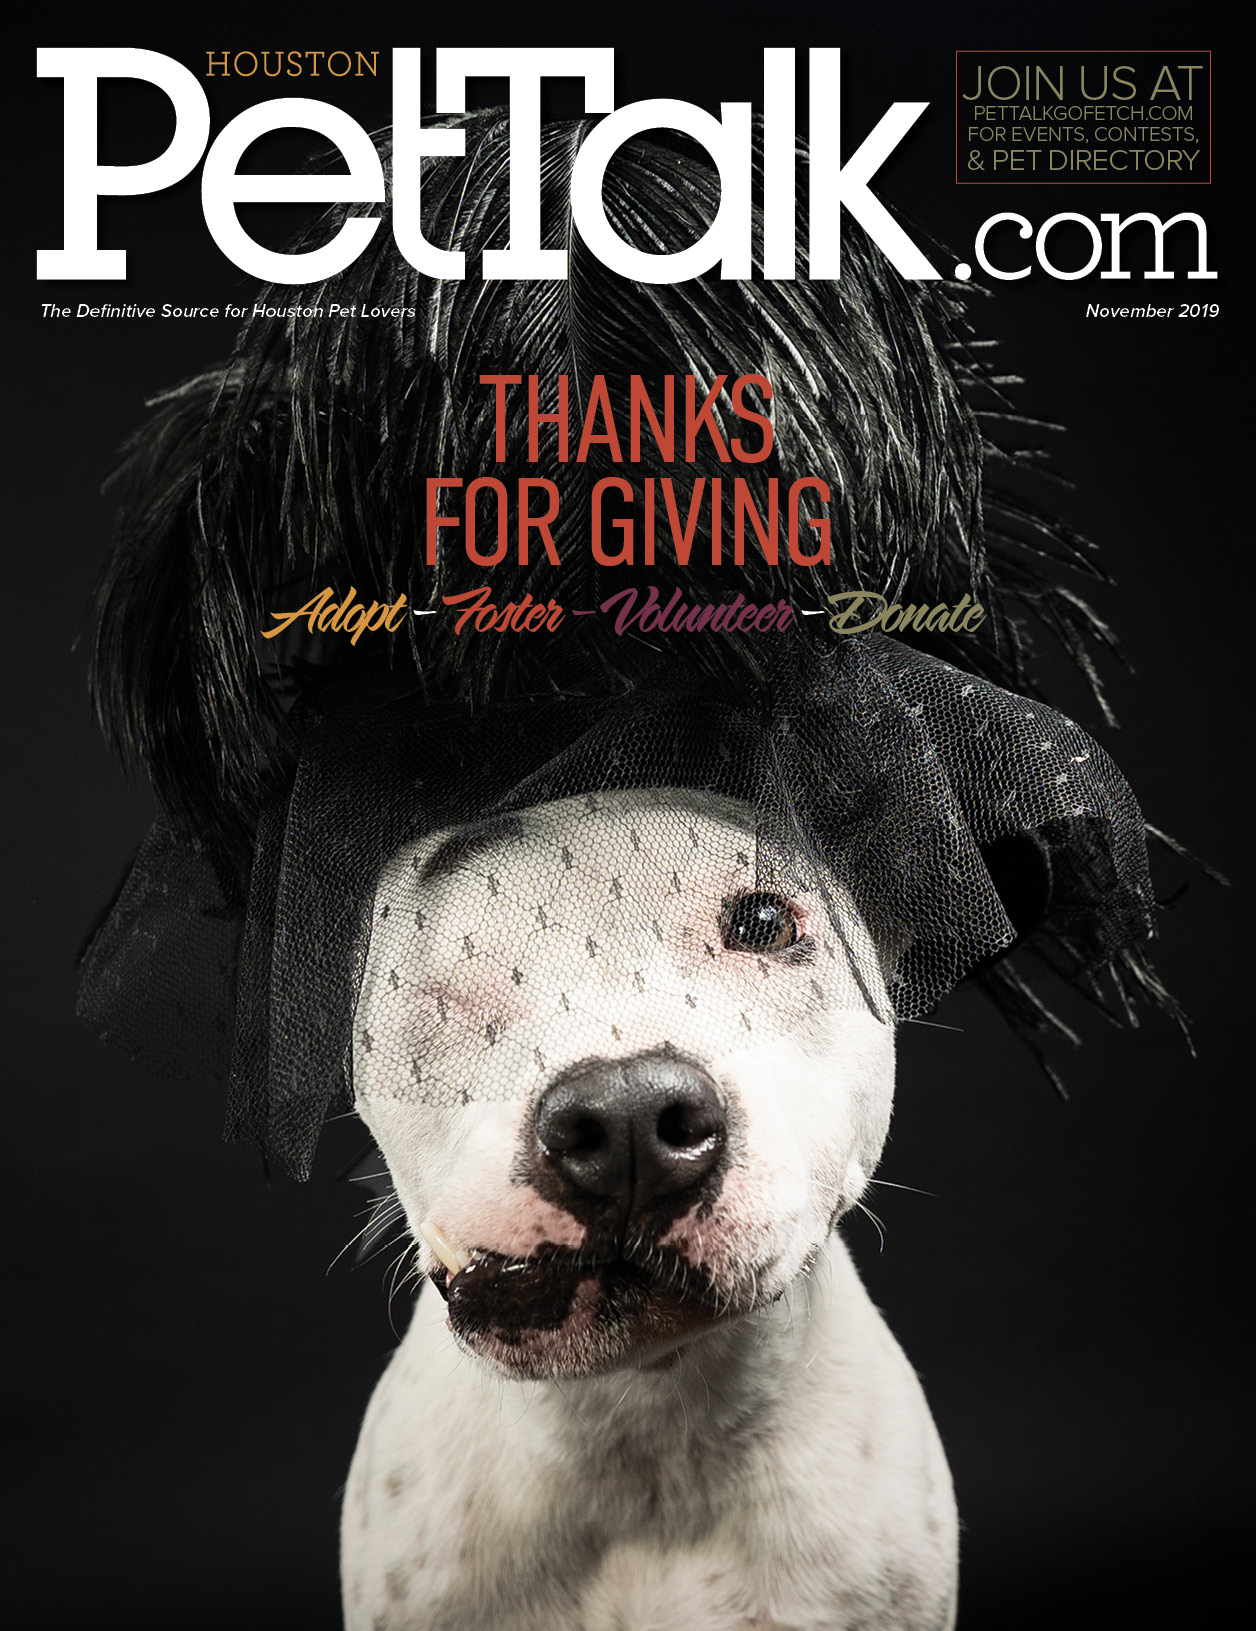 November 2019 Digital Issue of Houston PetTalk